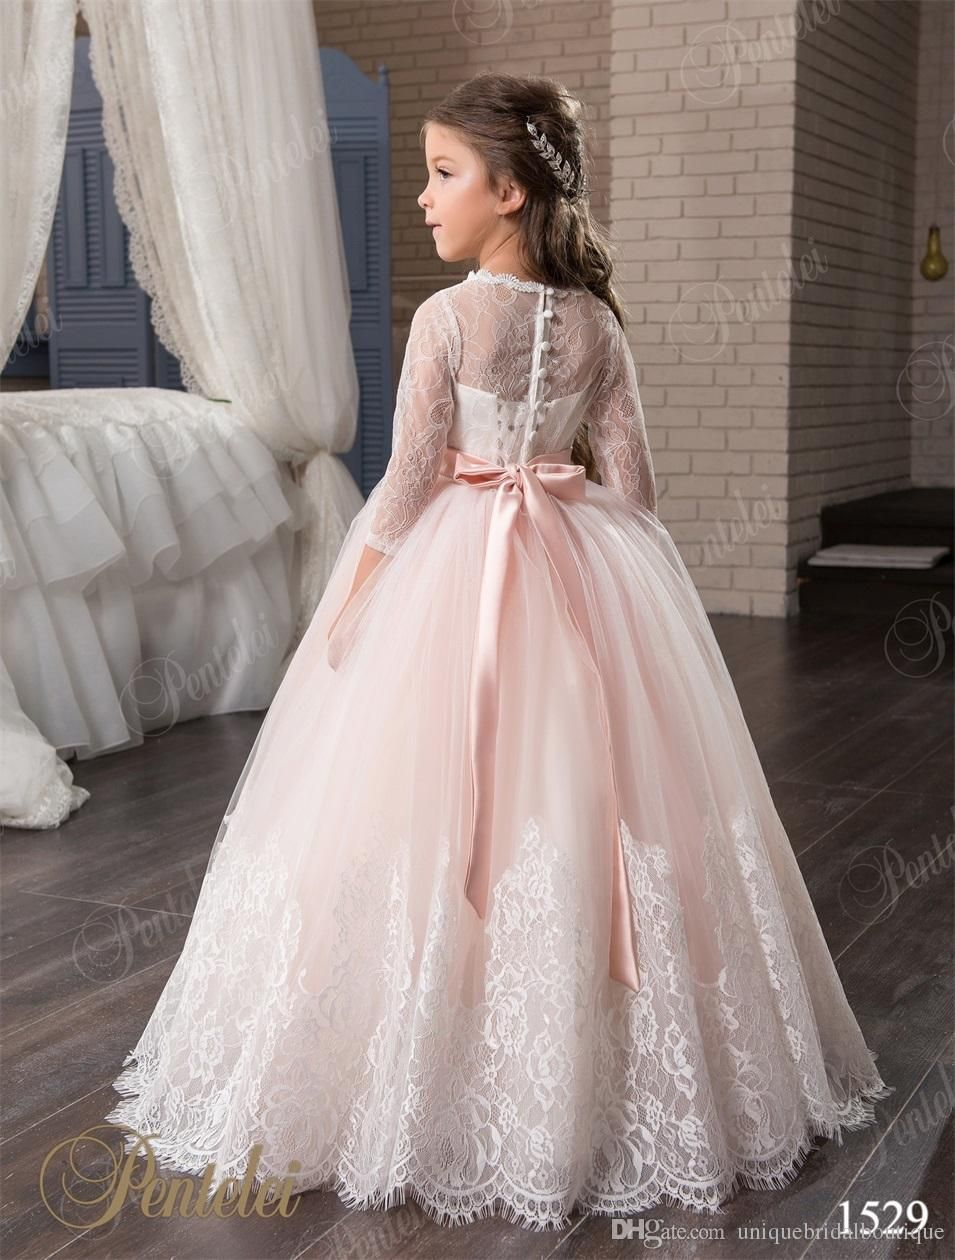 83ff6b65f Blush Flower Girls Dresses With 3 4 Long Sleeves And Beaded Belt ...